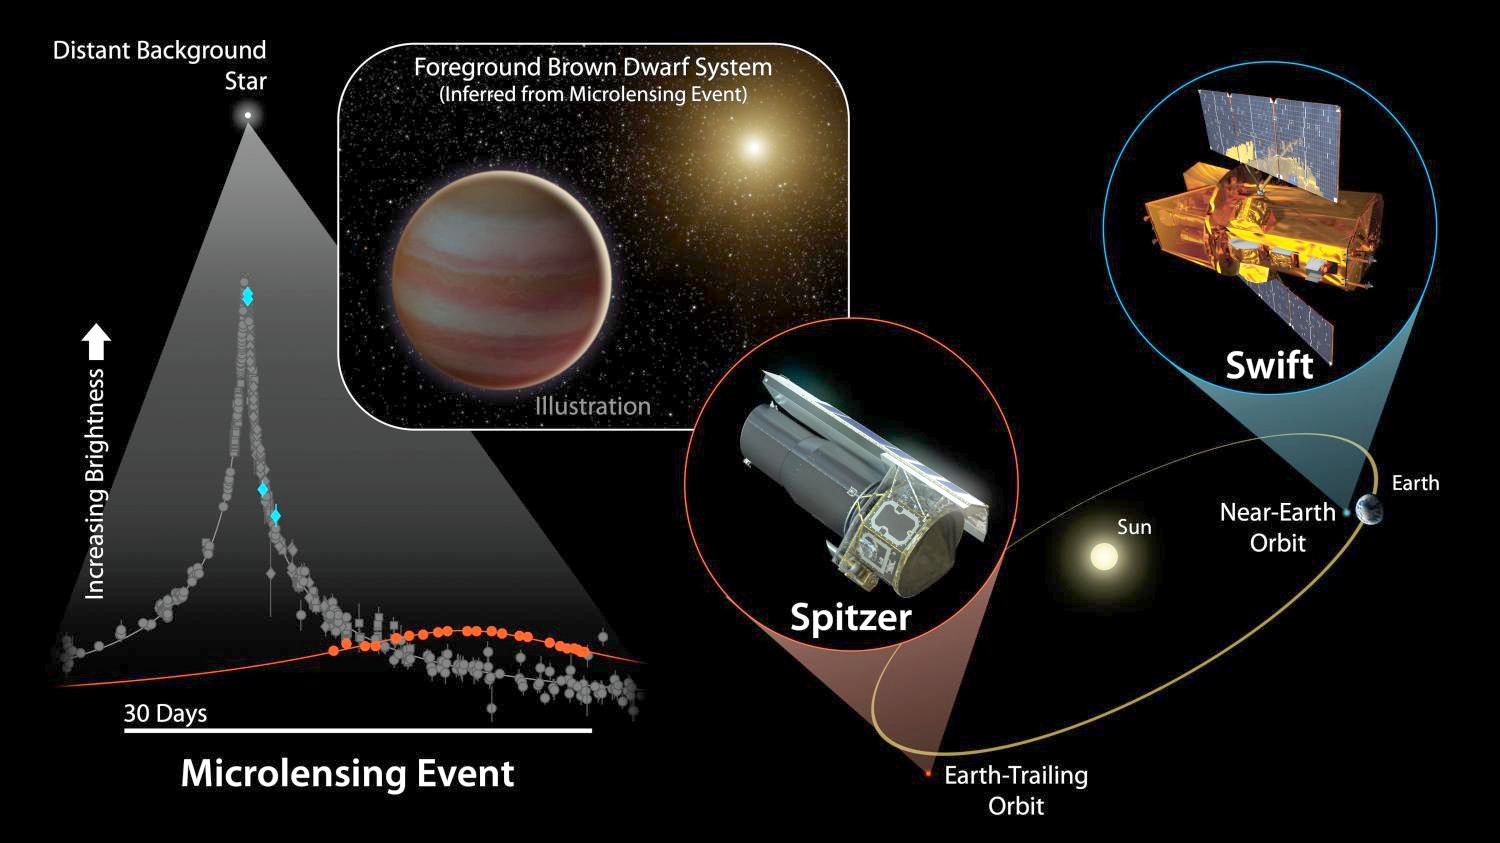 Two of NASA's space-based instruments, the Spitzer Space Telescope and the Swift Gamma-Ray Burst satellite, teamed up with ground-based observatories to observe microlensing event OGLE-2015-BLG-1319 caused by a brown dwarf. Image credit: NASA/JPL-Caltech.